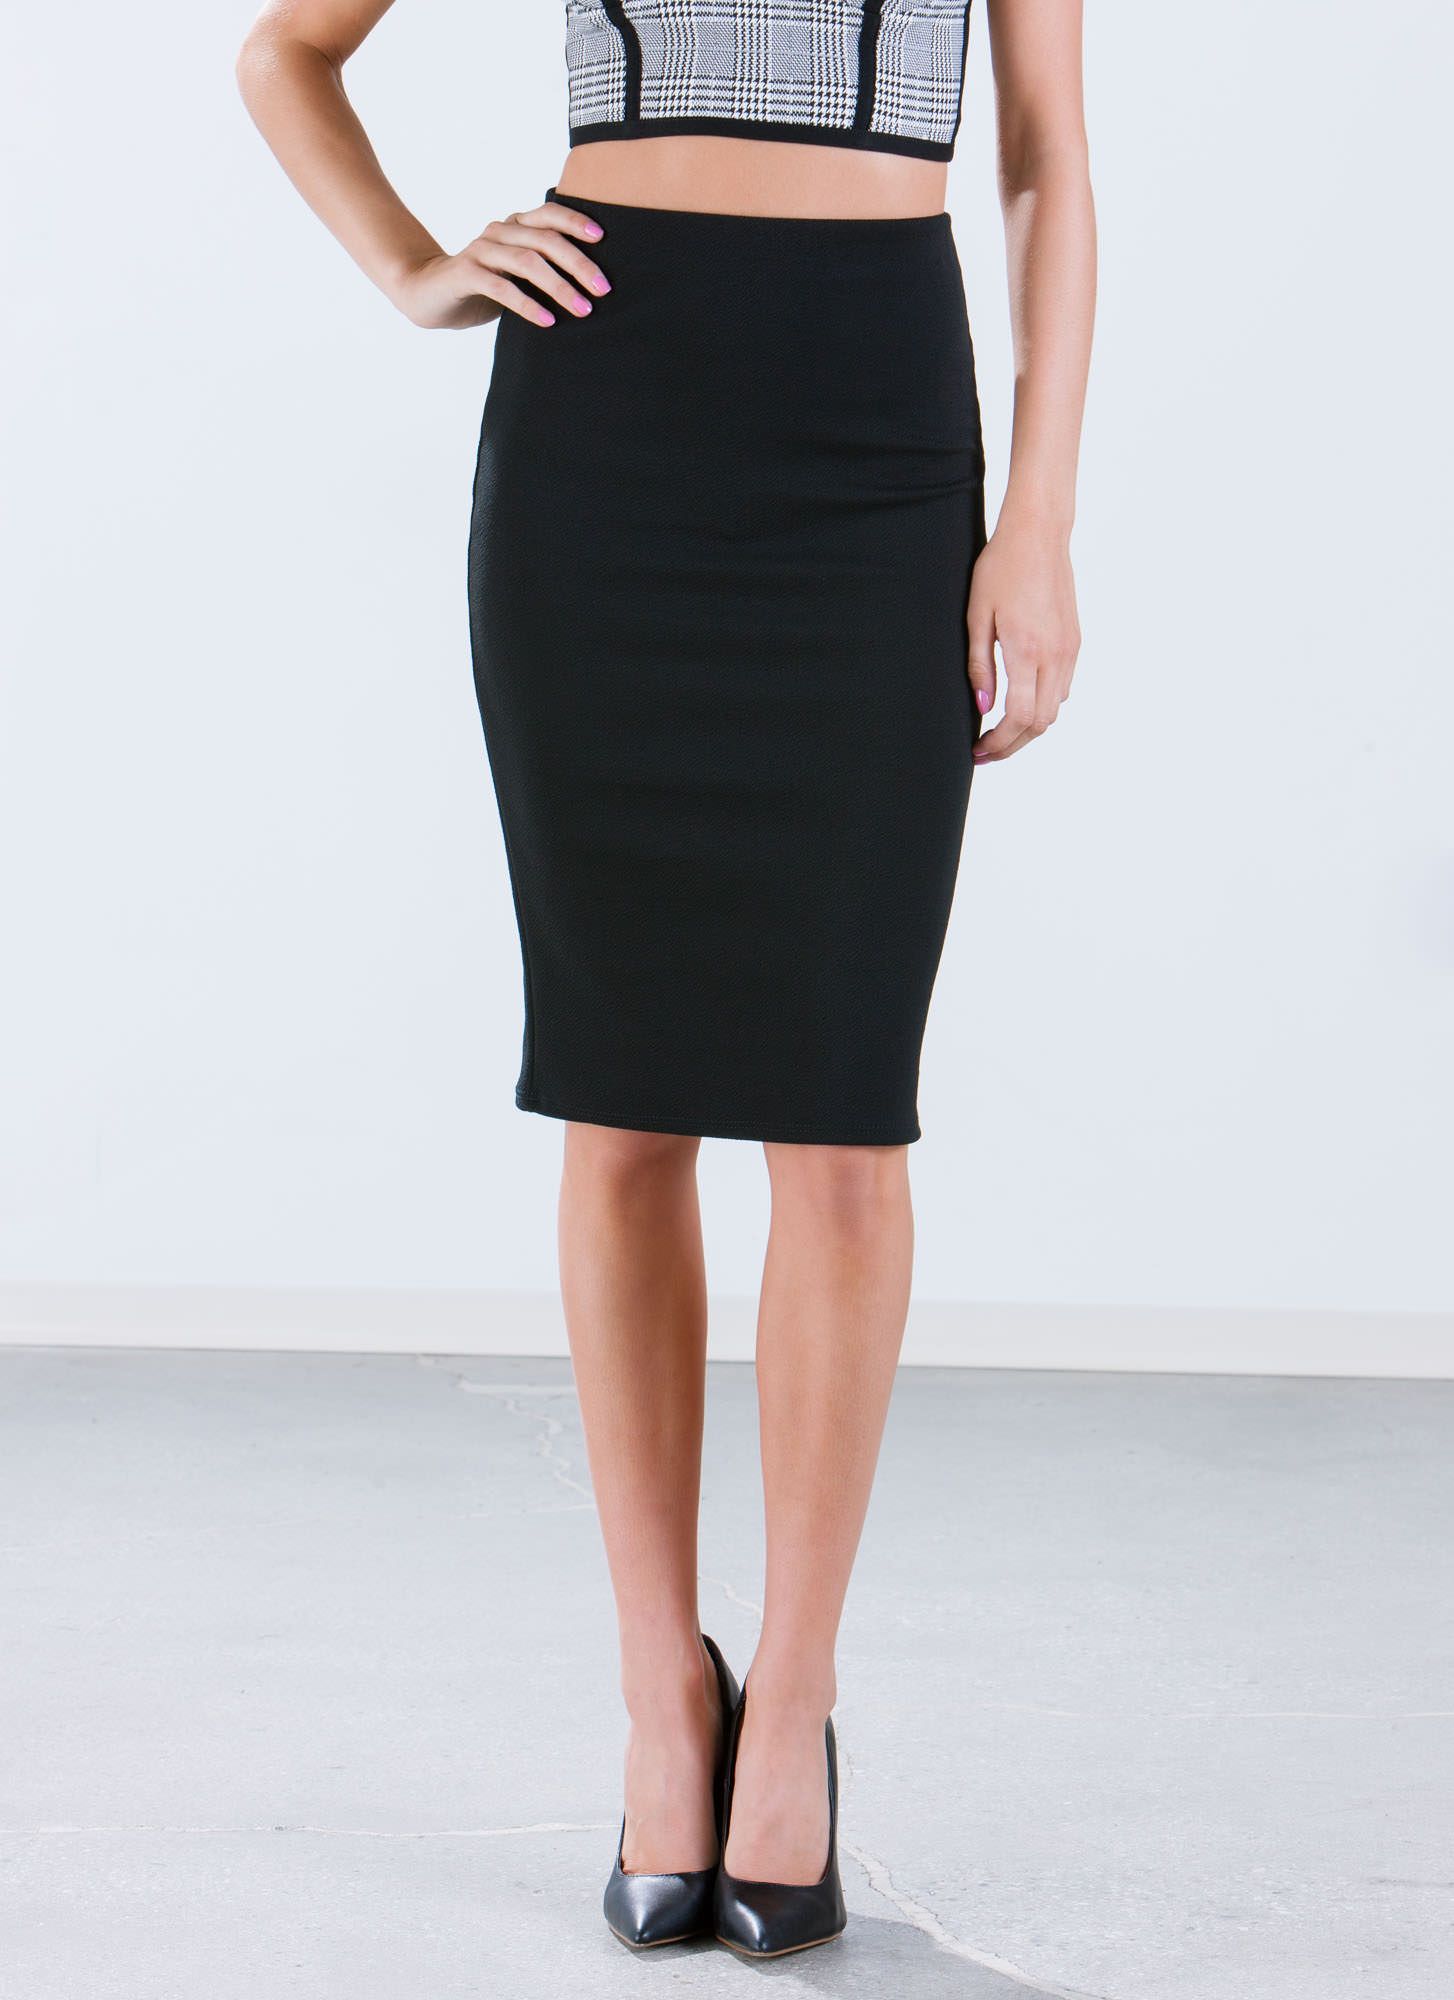 The pencil skirt is one of the most timeless silhouettes in fashion — and with a good reason. Pencil skirt outfits are a flattering look — when worn right — on just about every figure. With a tucked-in shirt or belted jacket, the pencil skirt gives you a long, lean line. In addition, it shows.